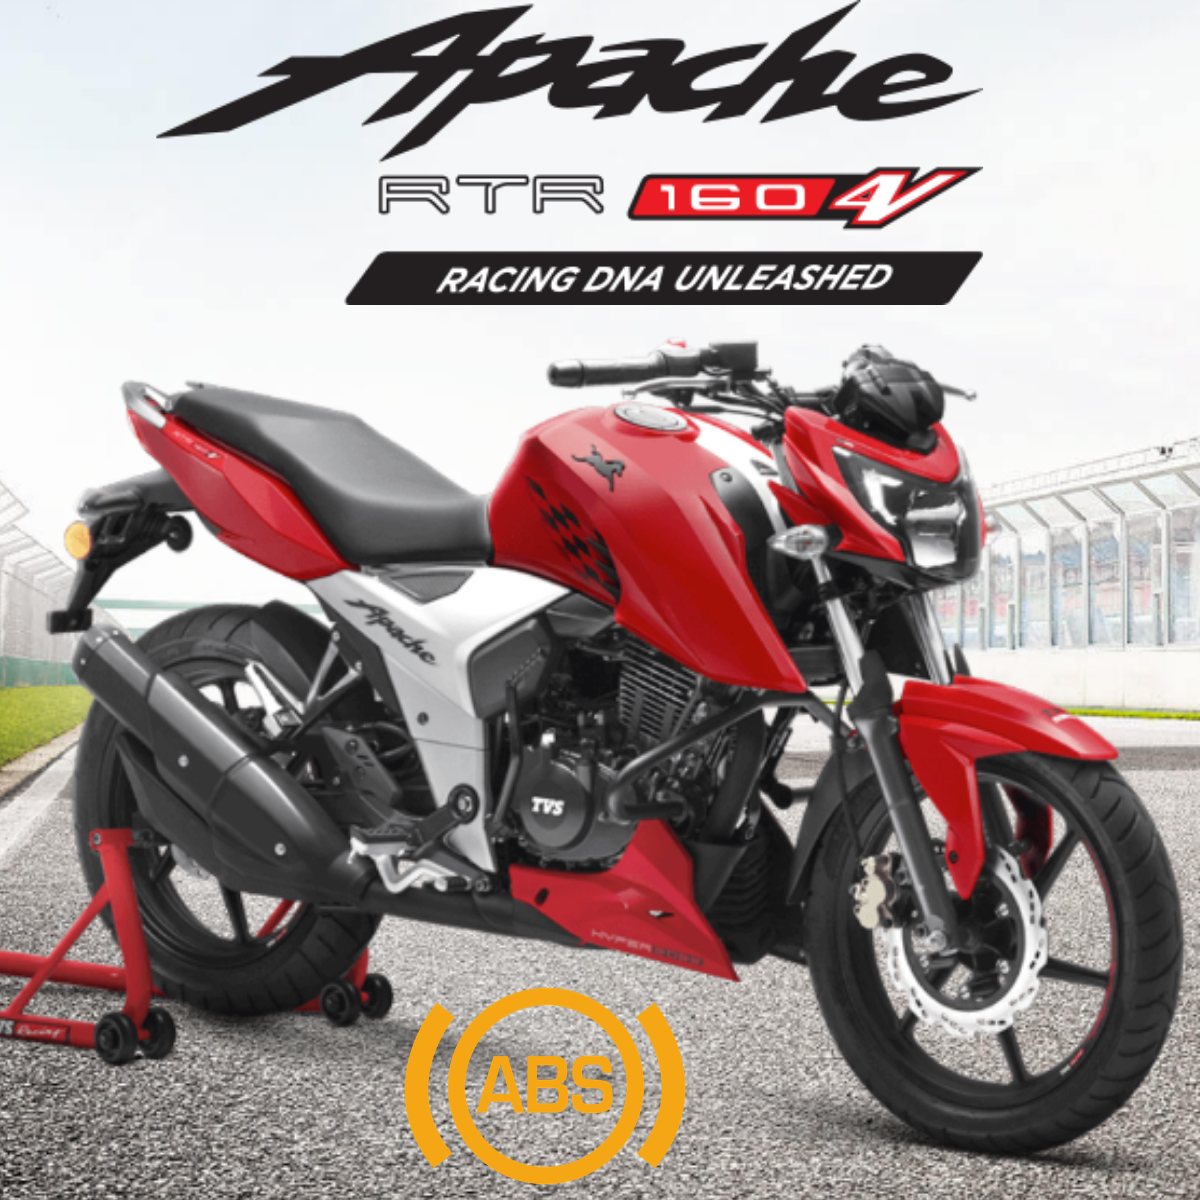 2019 Tvs Apache Rtr 160 4v With Abs Launched At Inr 98 644